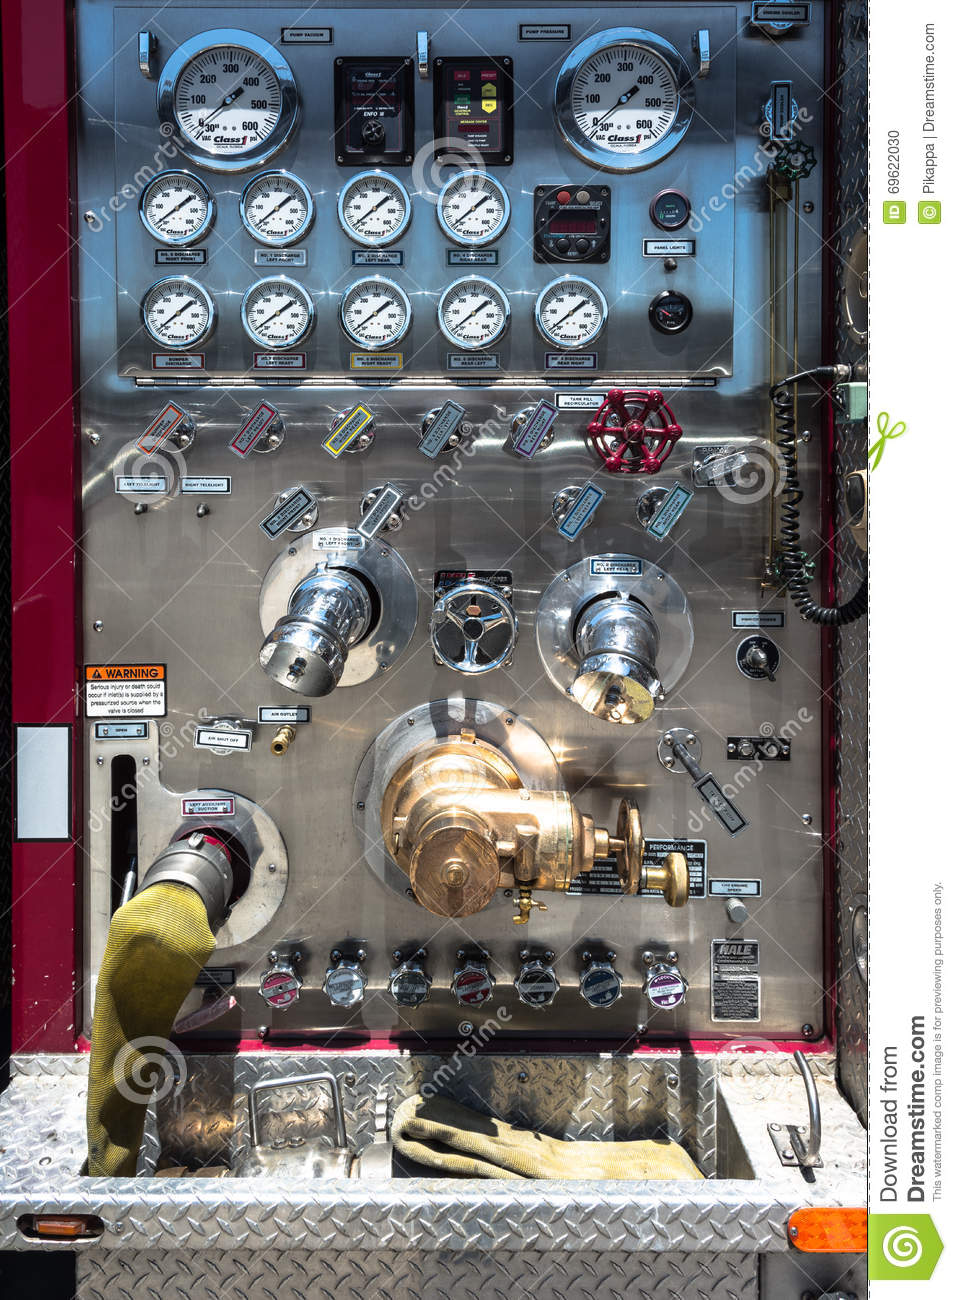 Pump It Up Prices >> Firetruck pump panel editorial image. Image of control ...